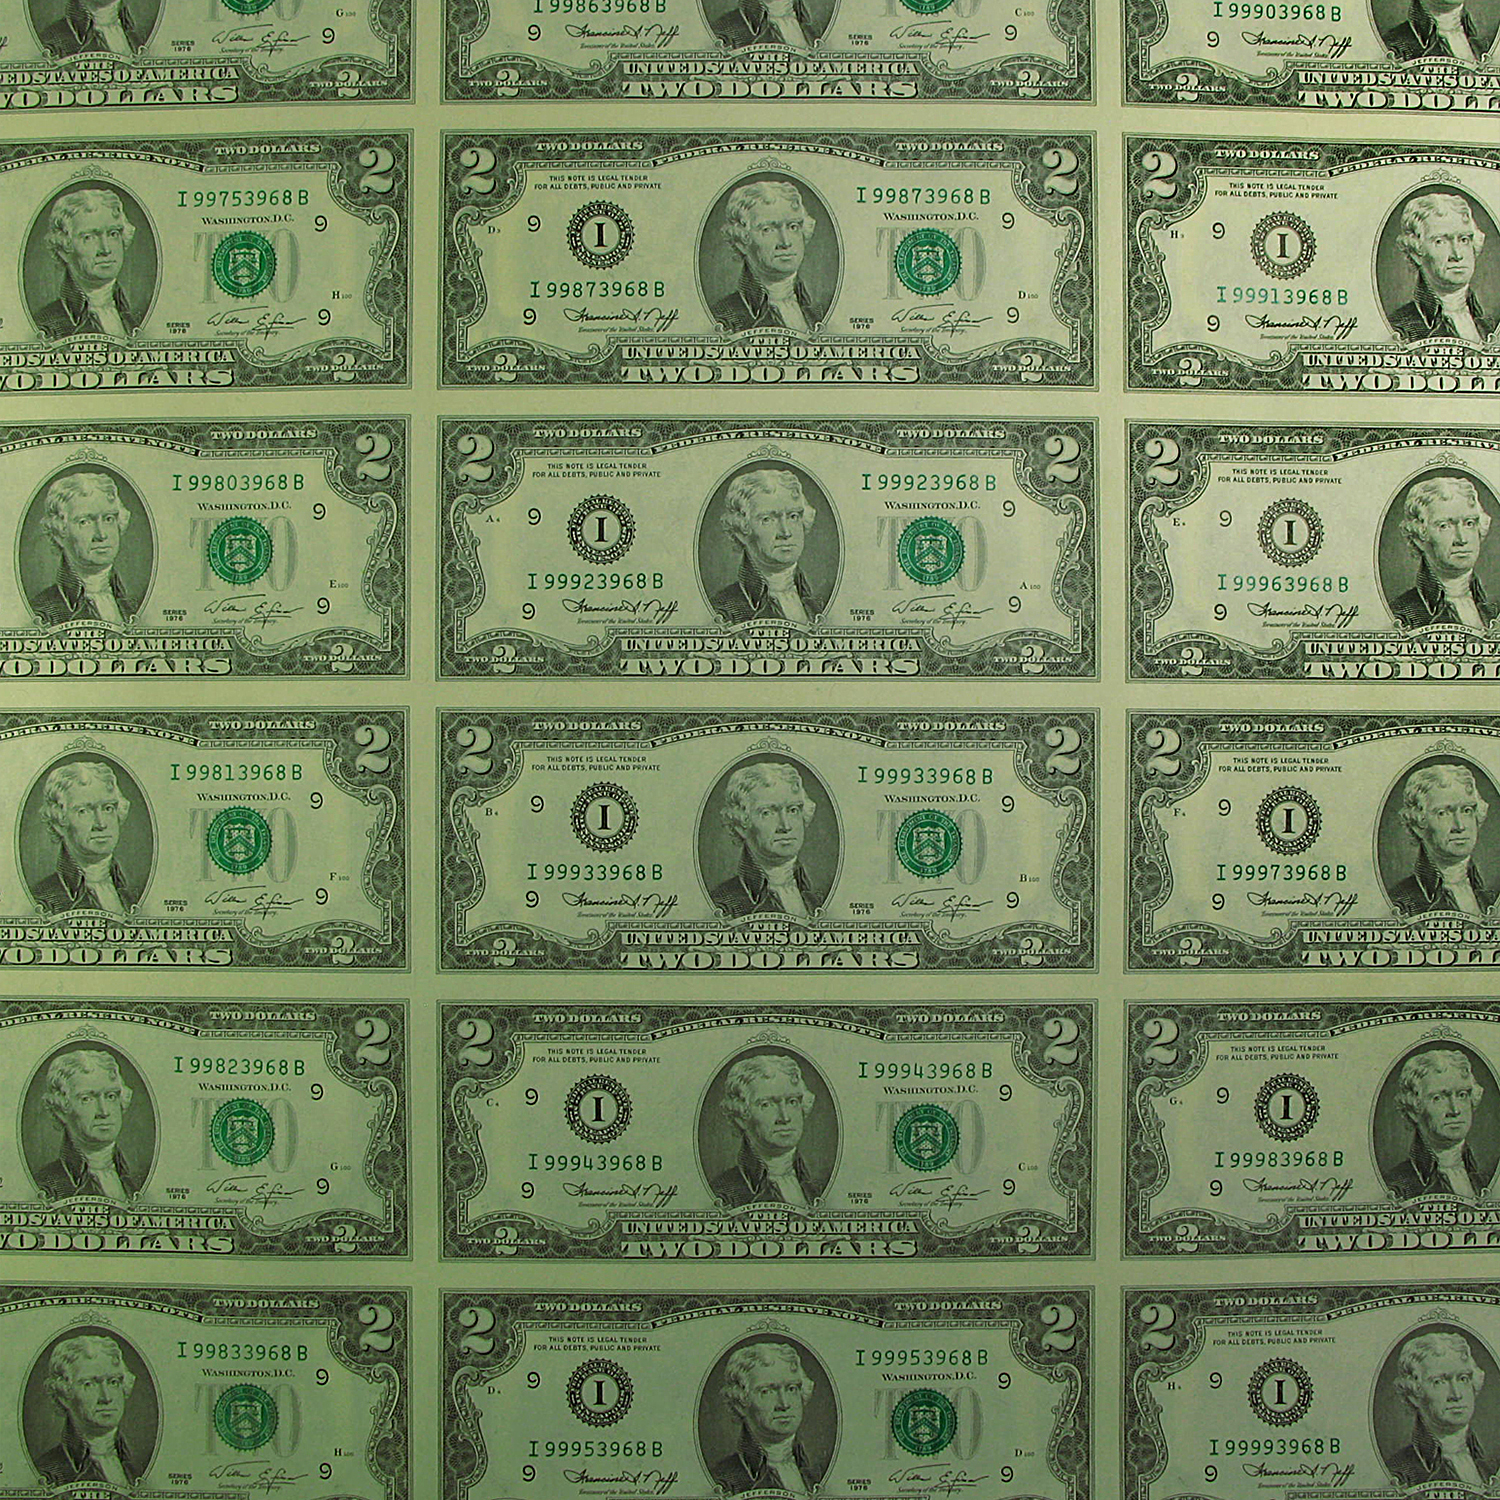 1976 (I-Minneapolis) $2.00 FRN CU (Uncut sheet of 32)